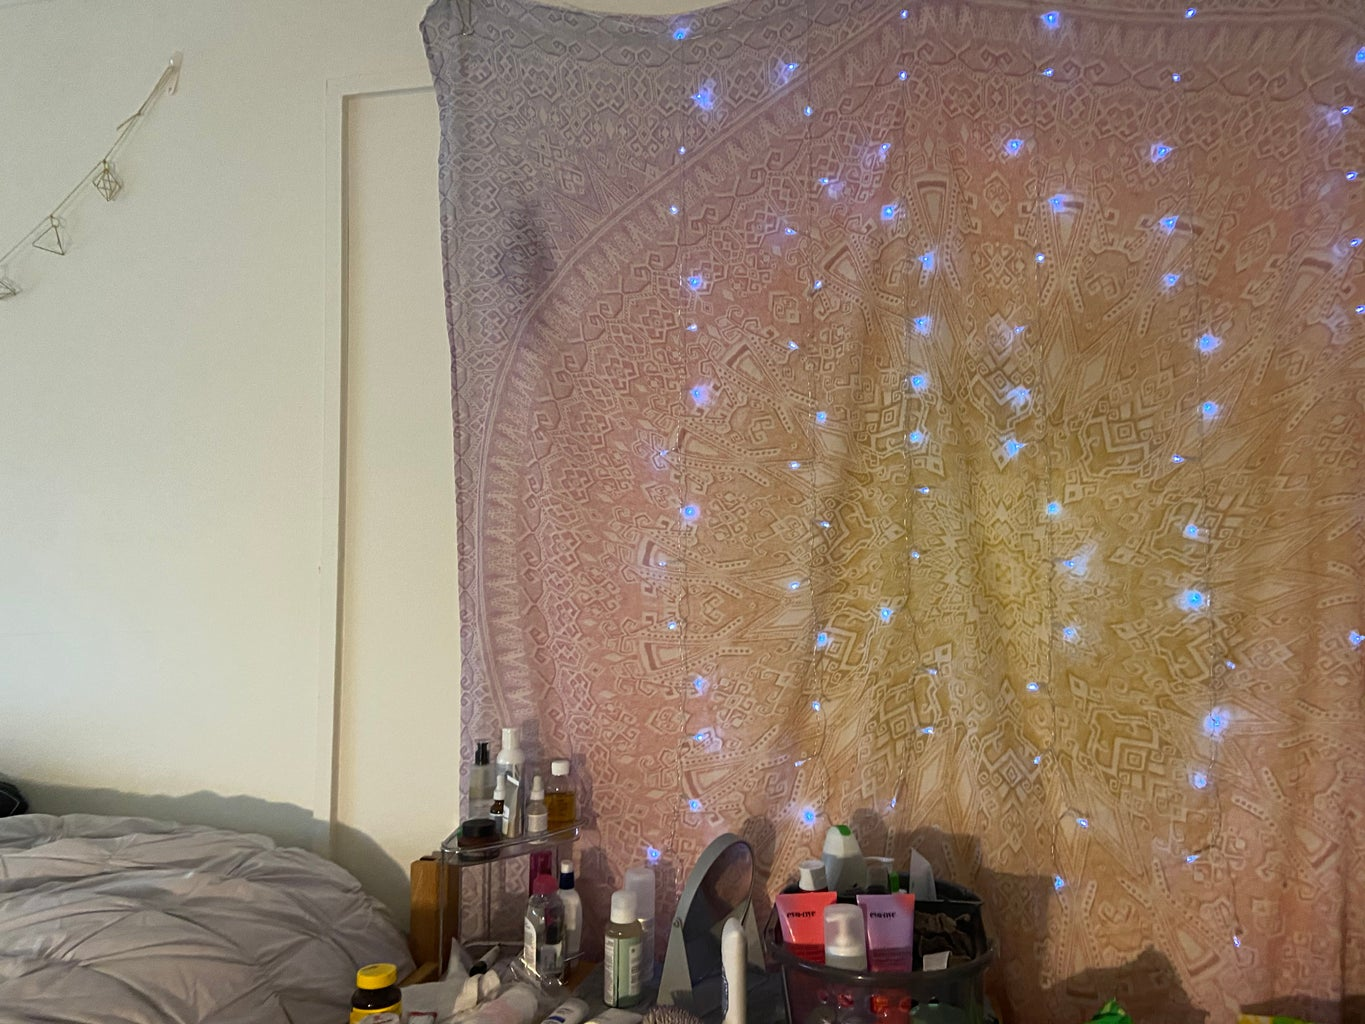 Tapestry and fairy lights in college dorm